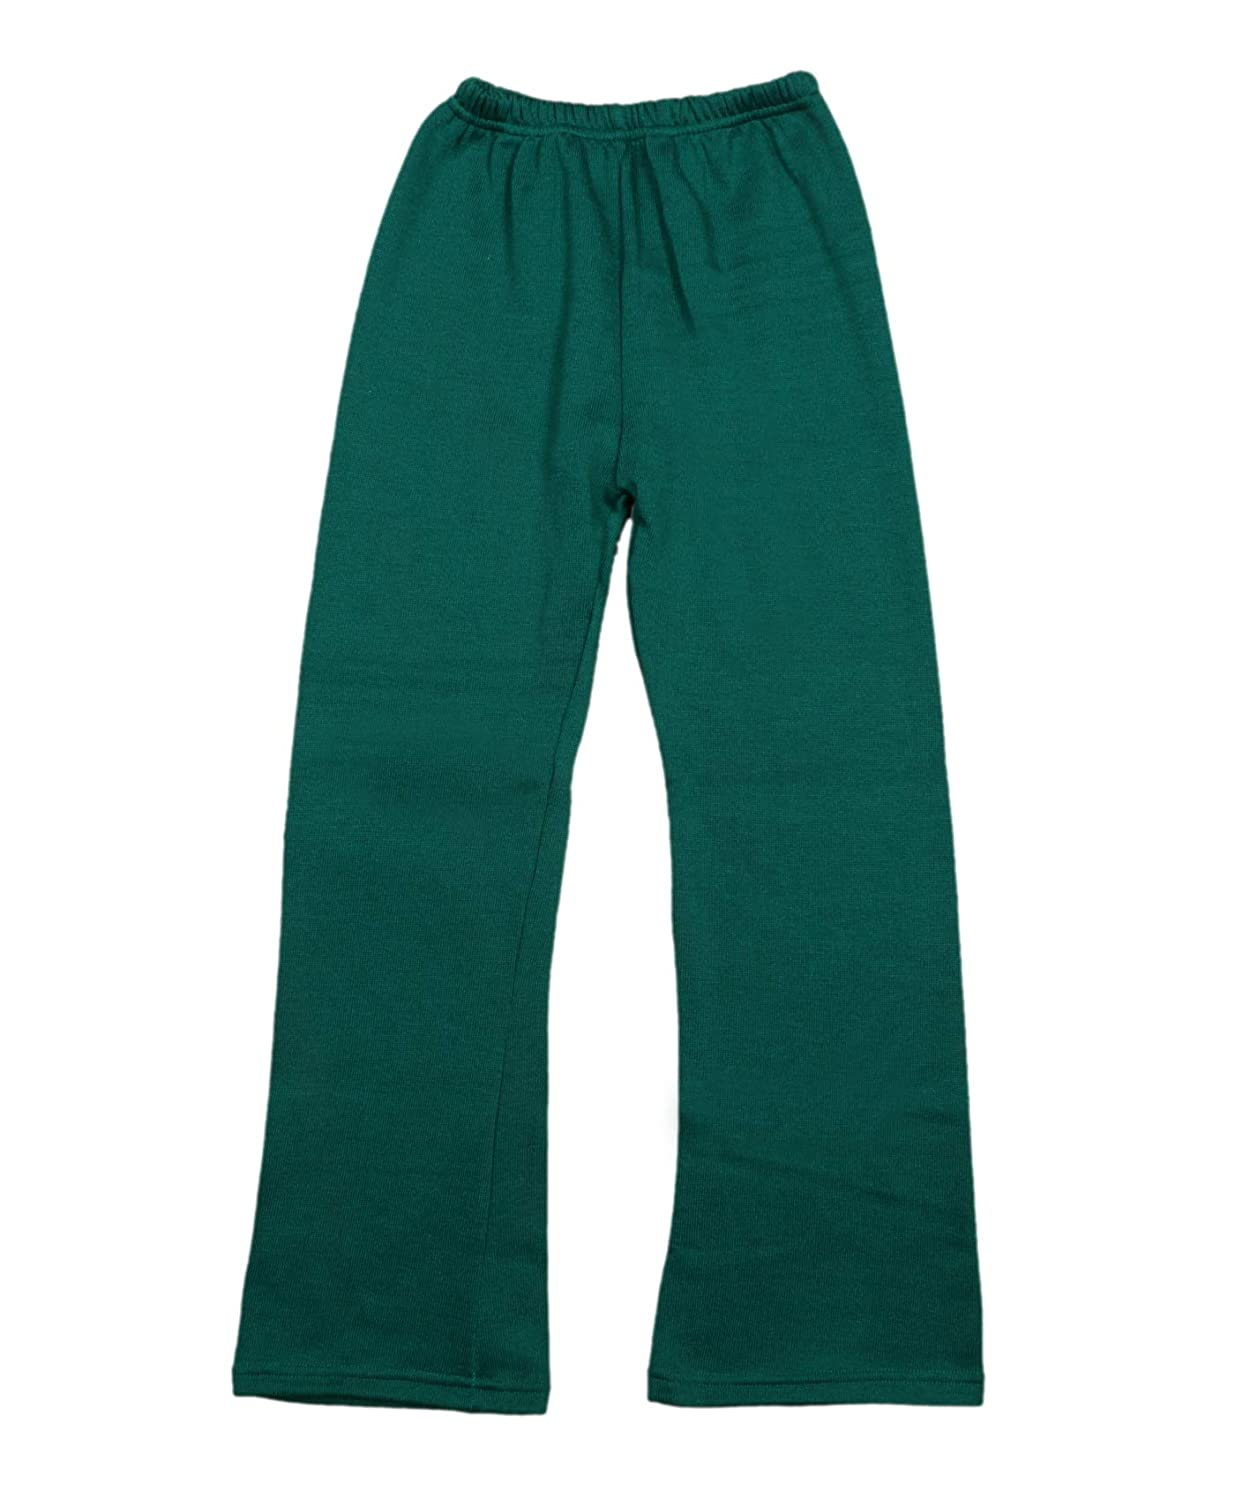 Pack of 2 Indistar Girls Warm Woolen Palazzo Pants for Winters